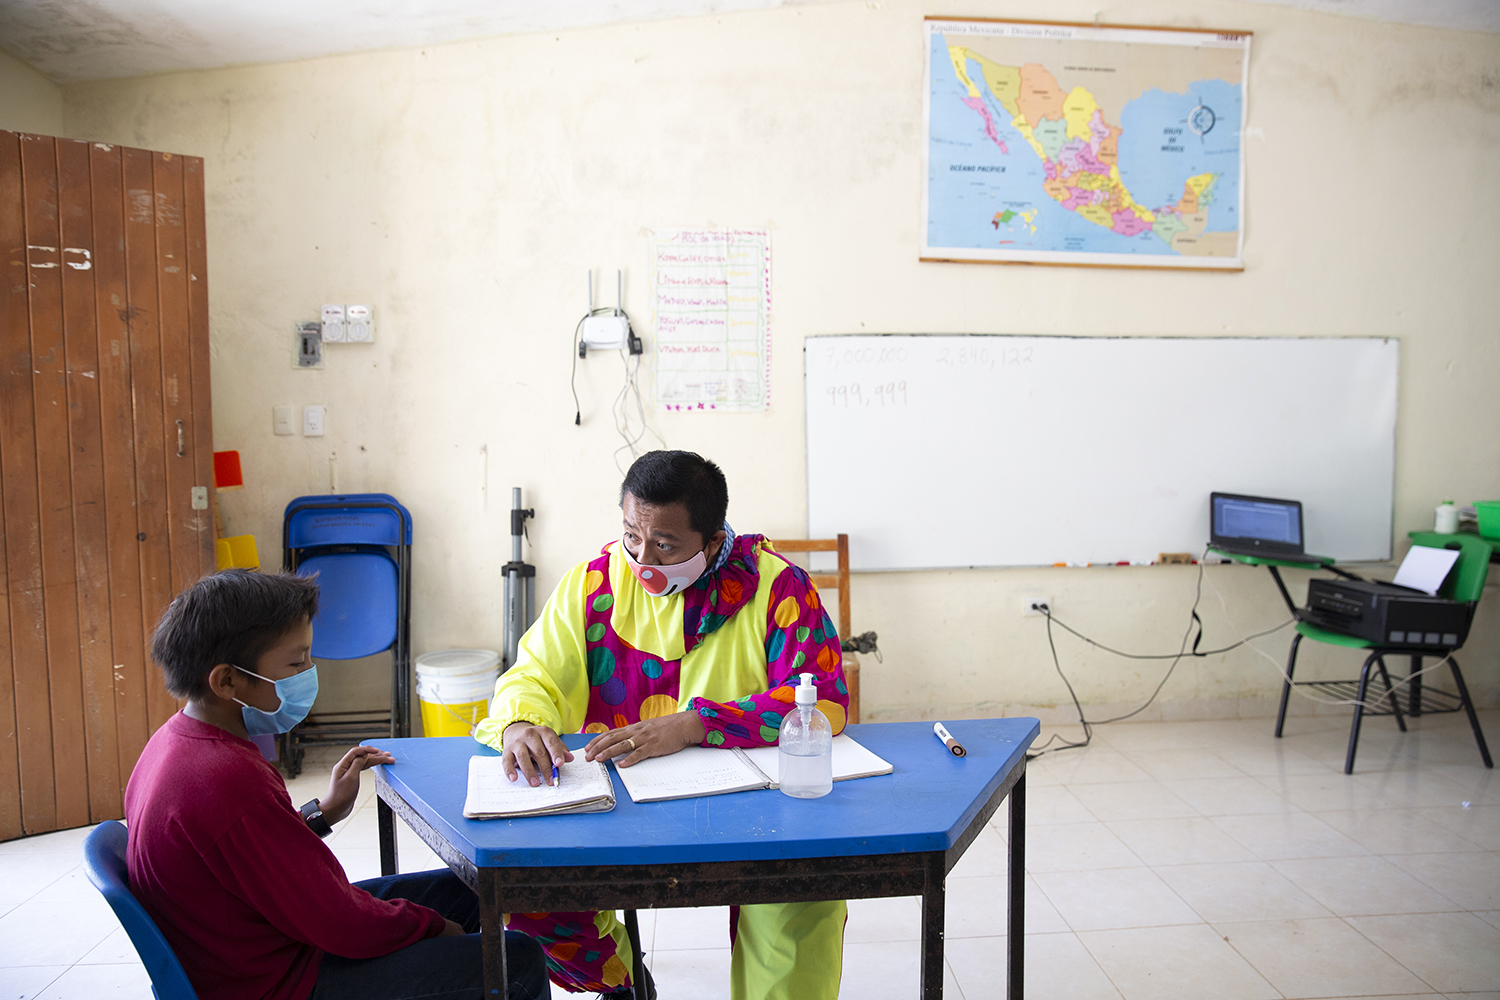 Headmaster José Manuel Cen Kauil teaches a small class of students ranging from ages 9 to 11 at the Ignacio Ramírez Calzada primary school in Celtún on May 3